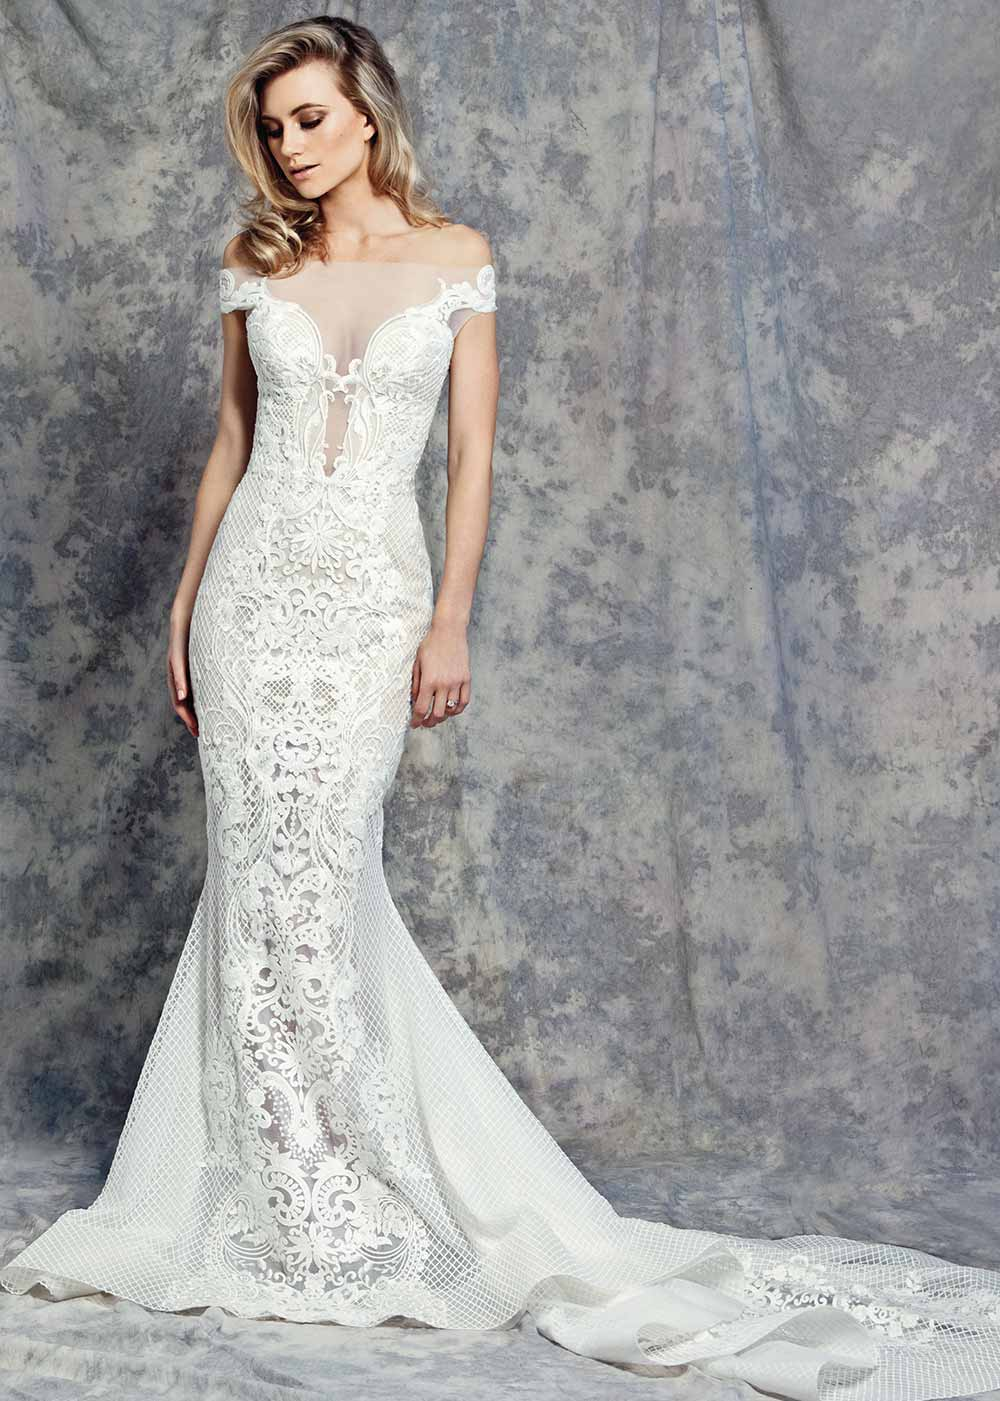 2018 Wedding Dress Trends That Every Bride Will Love | Live Enhanced